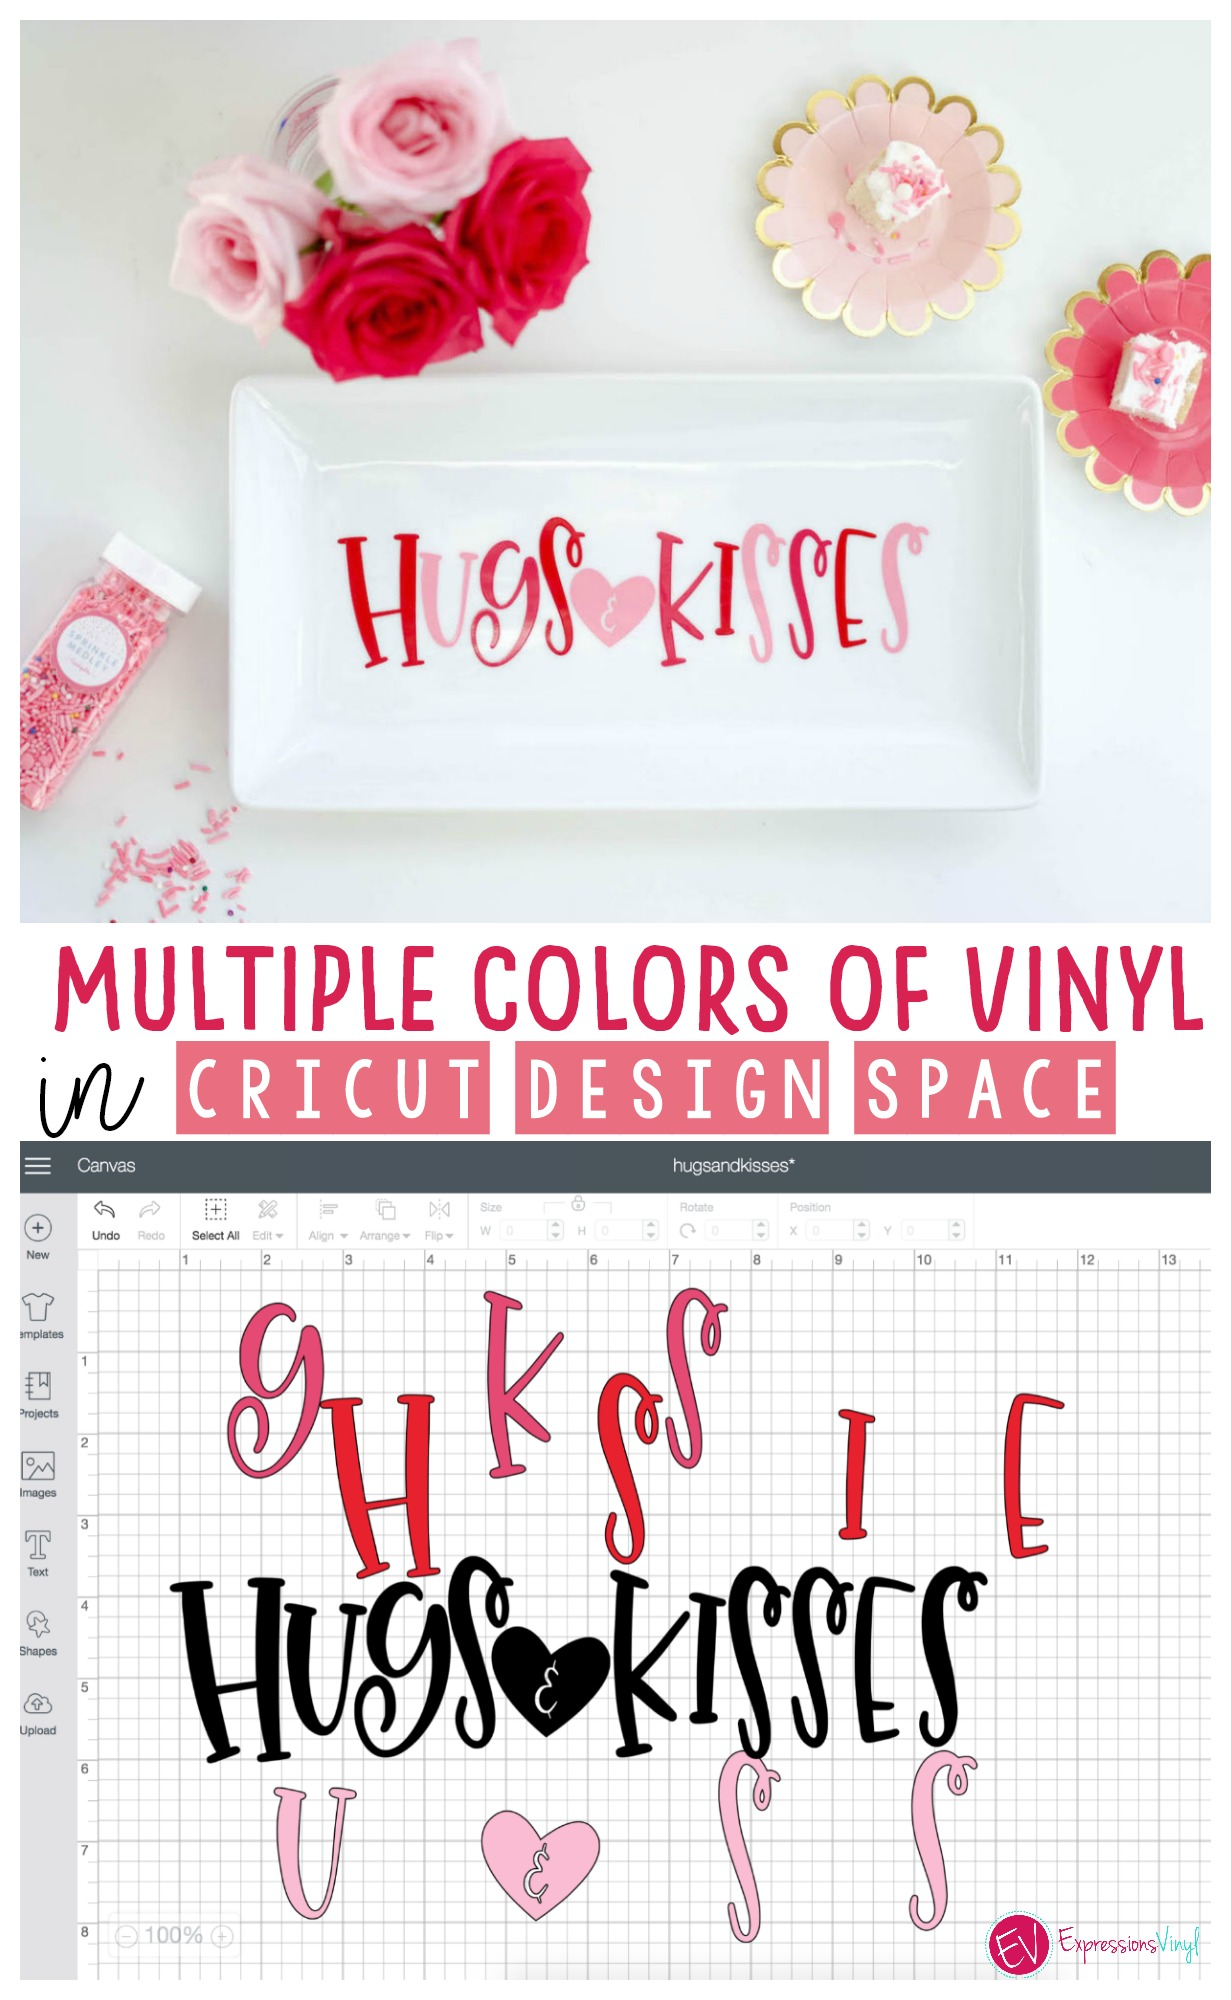 Using multiple colors of vinyl - Expressions Vinyl